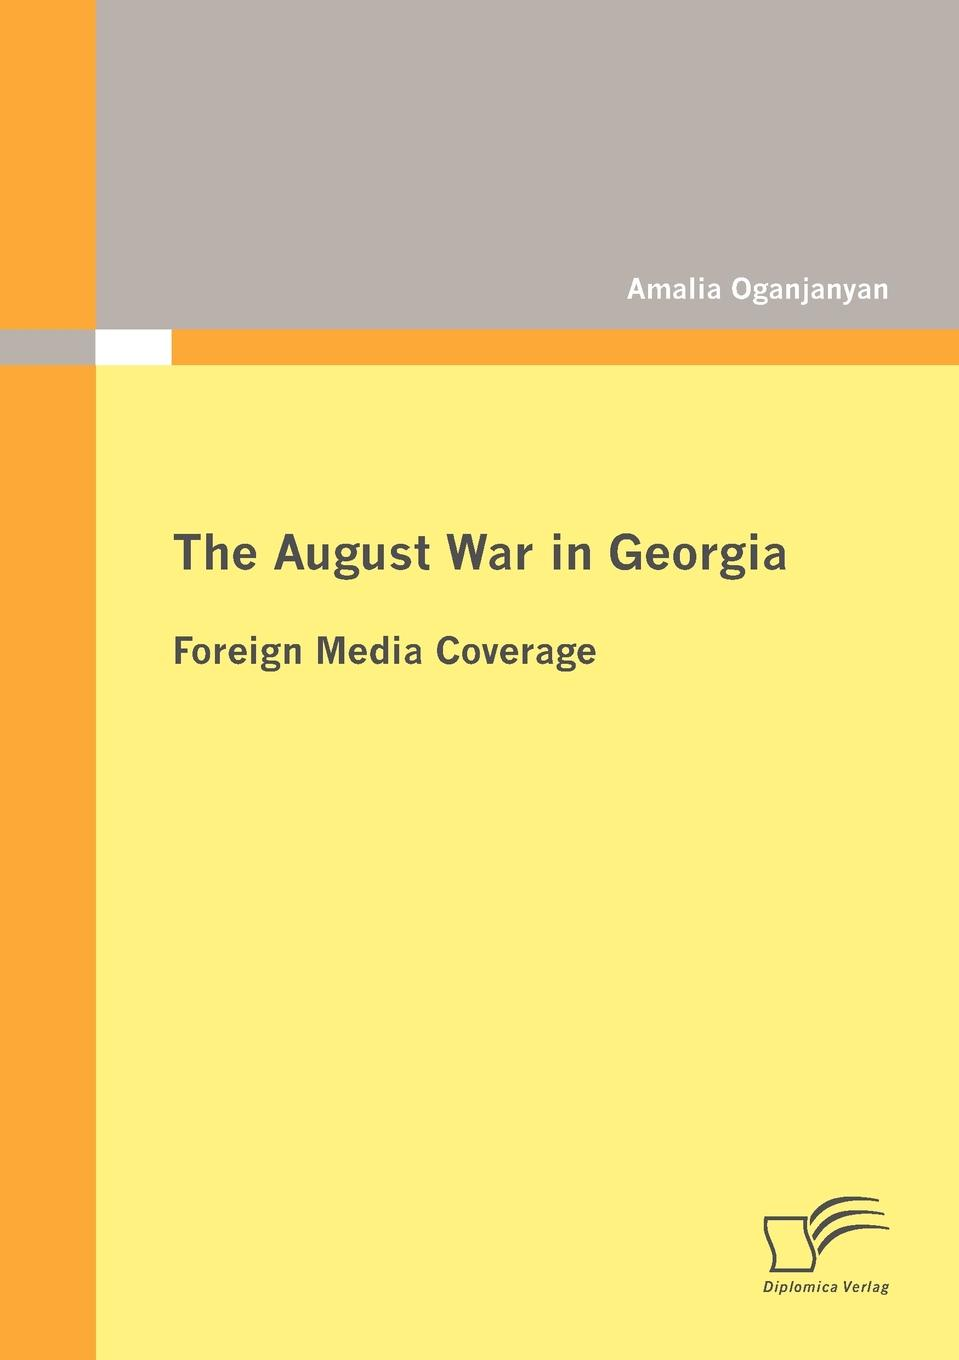 Amalia Oganjanyan The August War in Georgia. Foreign Media Coverage war photography images of armed conflict and its aftermath